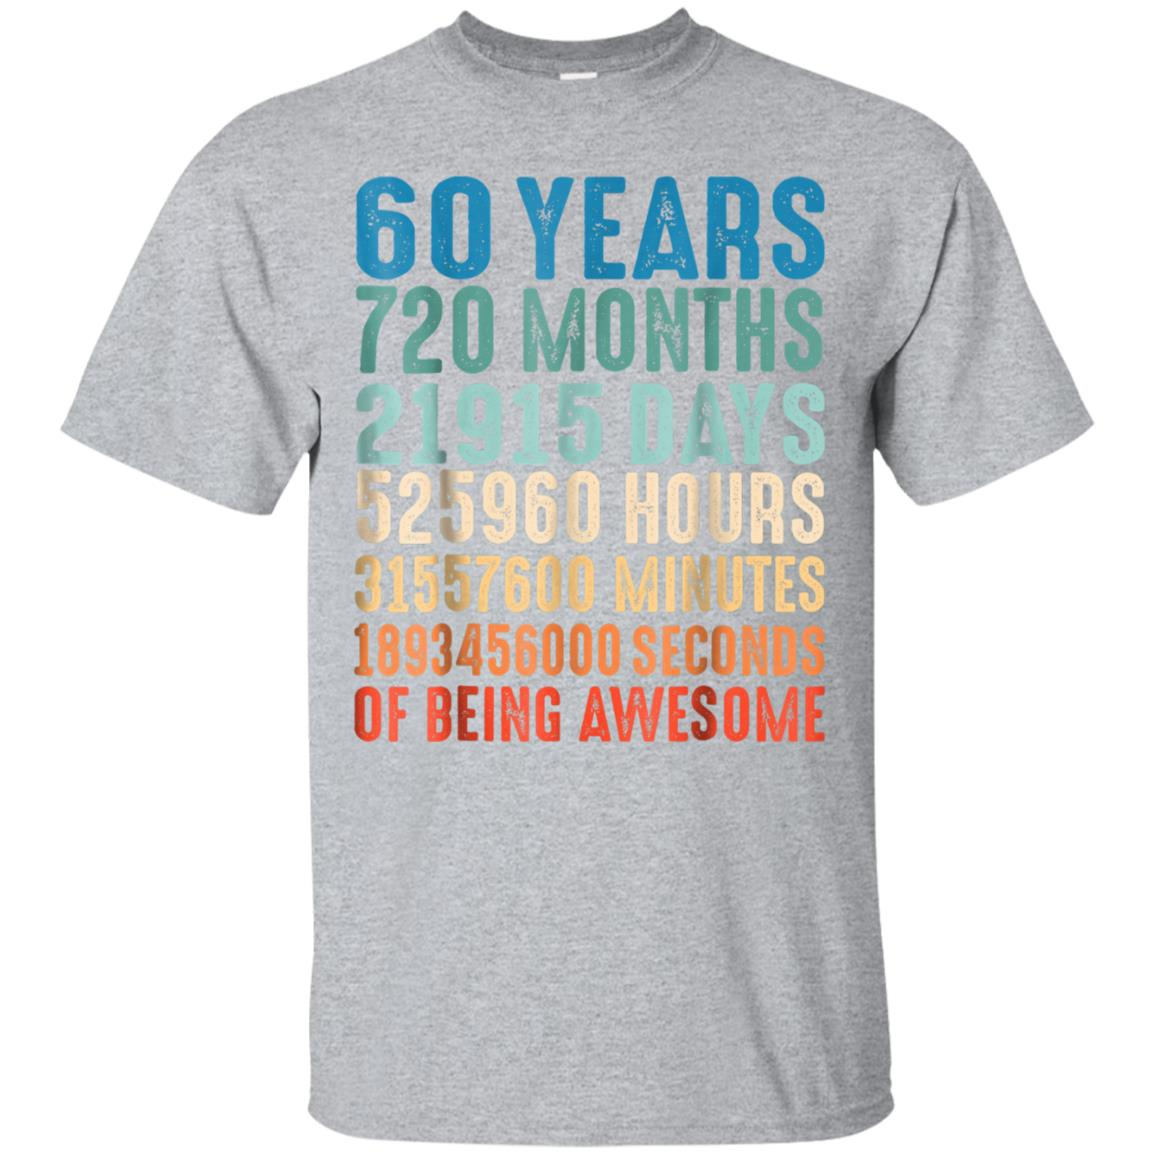 60 Years Old 60th Birthday Vintage Retro T Shirt 720 Months 99promocode